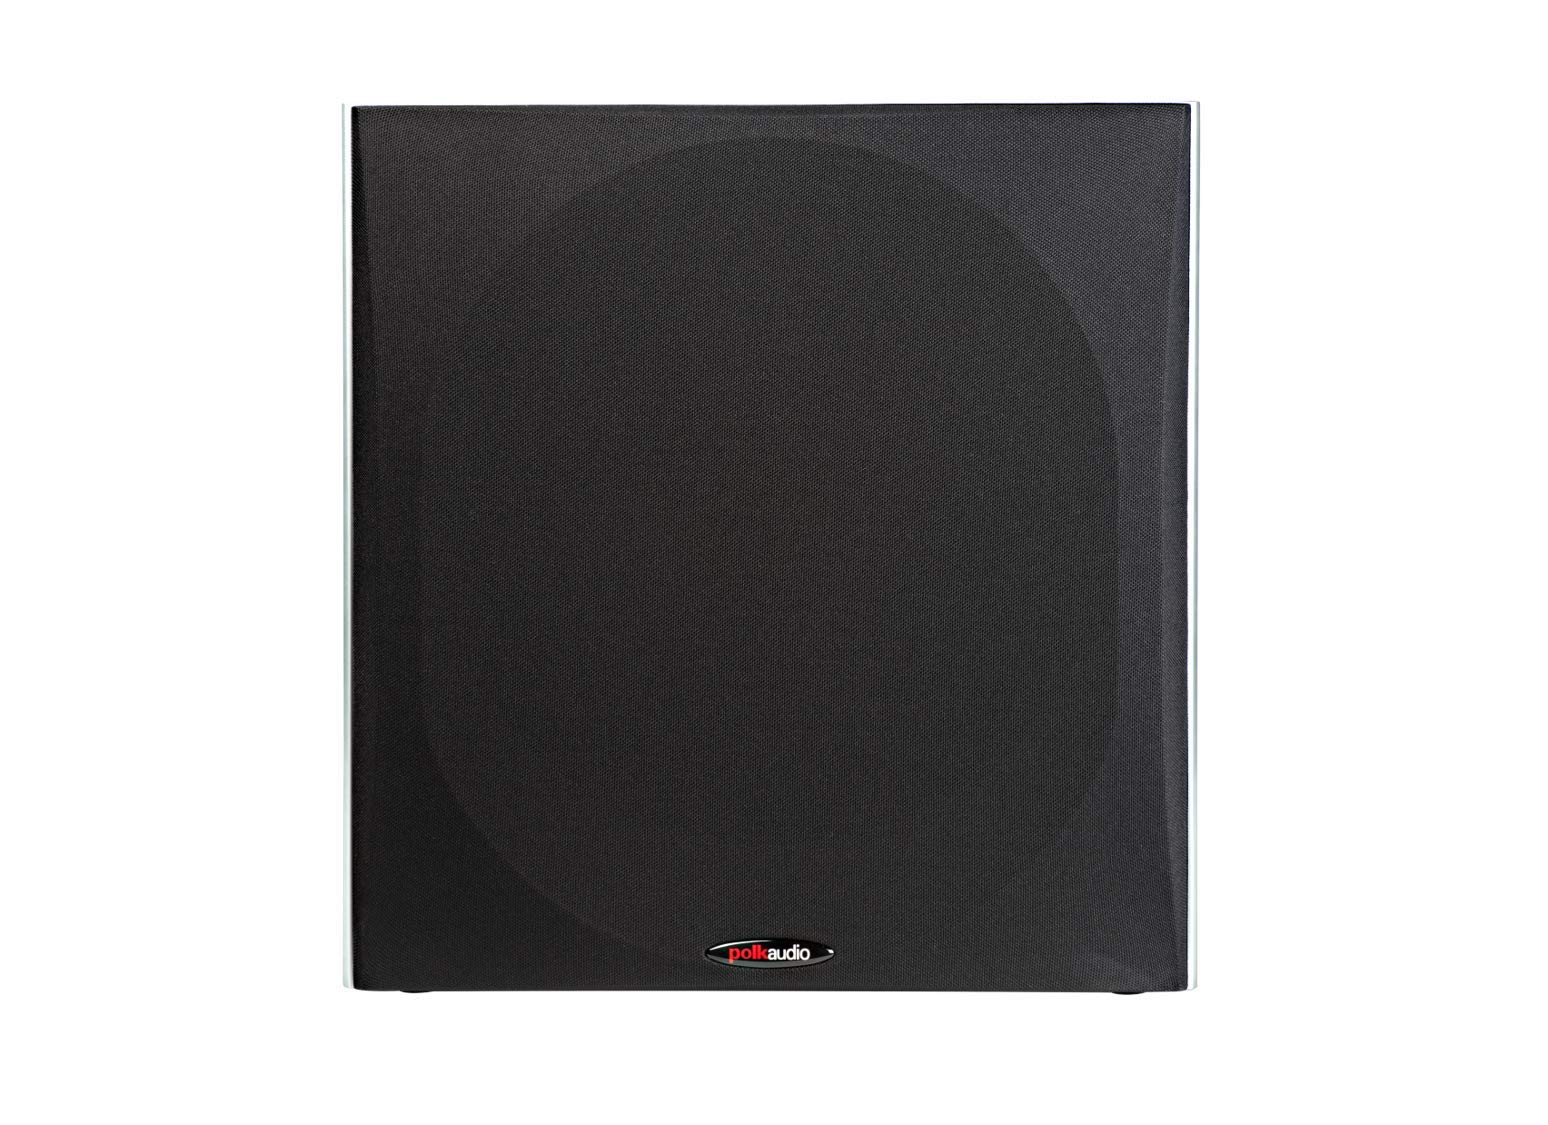 Polk Audio PSW505 12'' Powered Subwoofer - High Precision Bass with Extreme Power & Wide Soundstage | Up to 460 Watts | Big Bass at a Great Value by Polk Audio